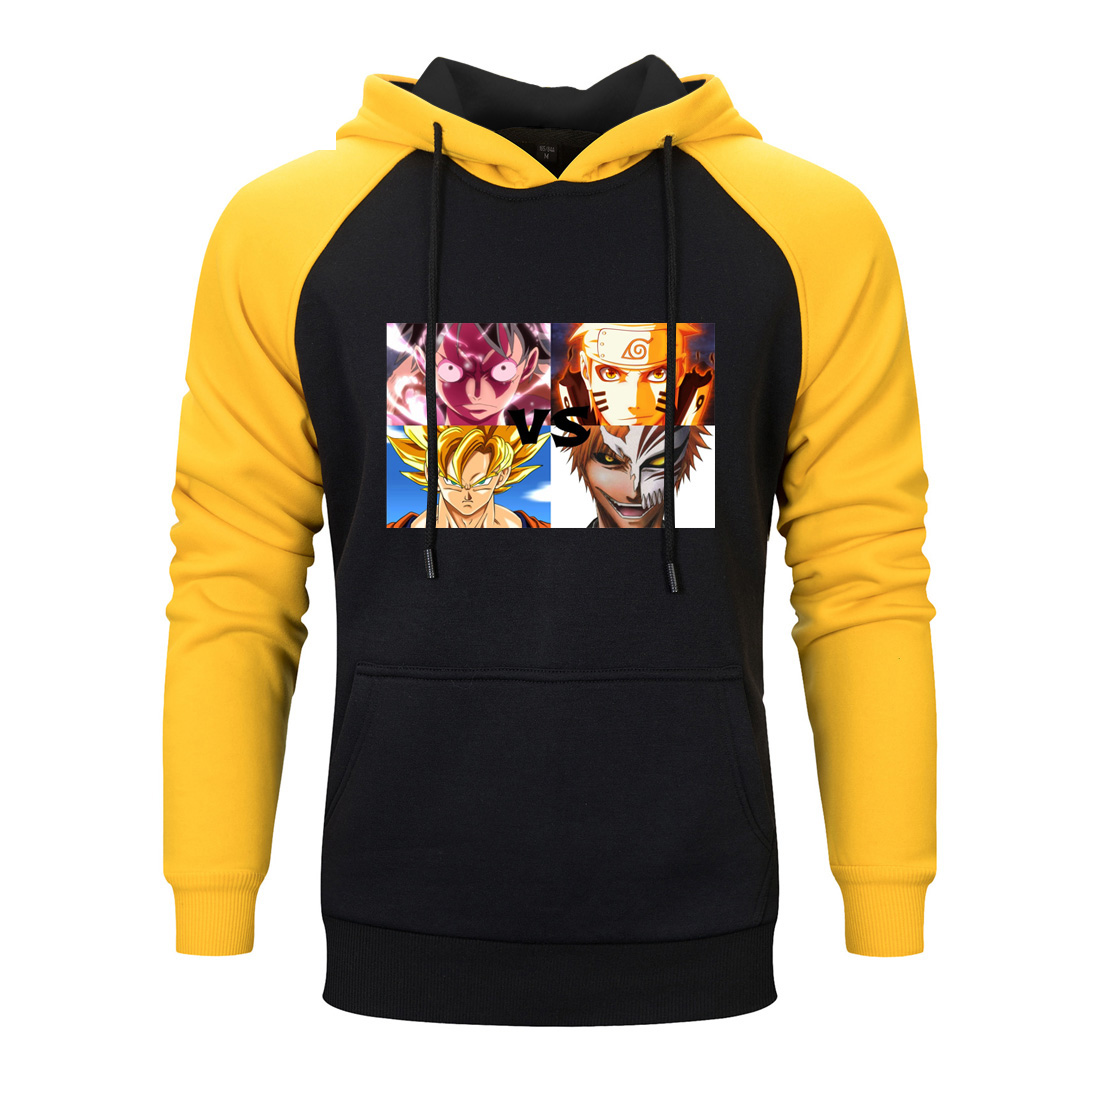 Super Cartoon Naruto Raglan Hoodie 2020  Japan Anime Sweatshirts Men One Piece Dragon Ball Cartoon Bleach Hoody Streetwear Coats